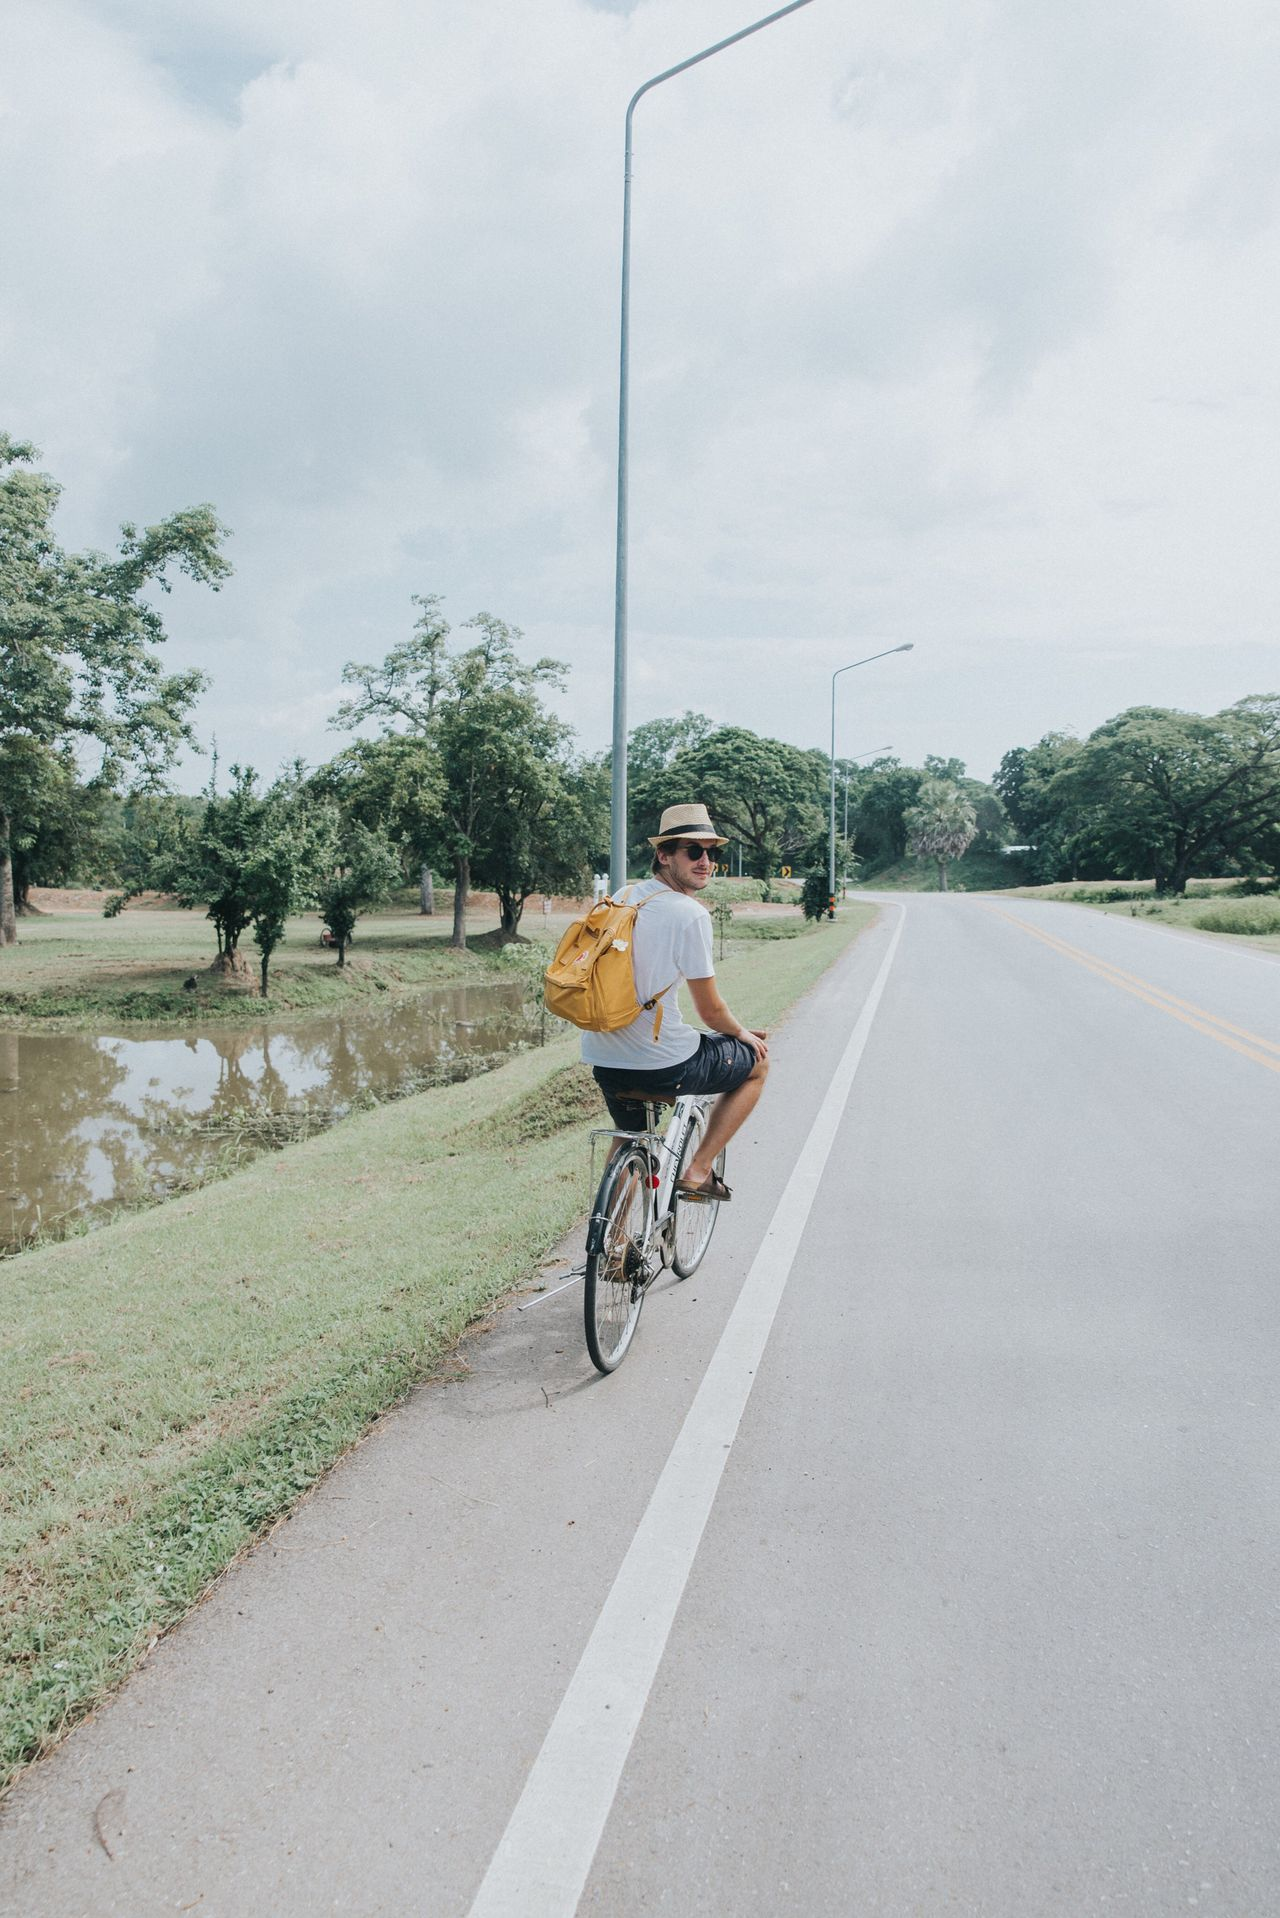 Thailand 🇹🇭 biking around Sukhothai during our honeymoon trip. You really want to go there and intentionally get lost in this historical site and wait for the golden hours to learn the true meaning of magic ✨EEyeEm GallerytTravel DestinationsfFull LengthbBicycleoOne PersonTTransportationcCyclingmMode Of TransportrReal PeopleoOutdoorsyYoung AdultEEyeEm Best ShotsEEyeEm Best EditsEEyeEmBestPicsTThailandLLive For The StoryLLive For The Story